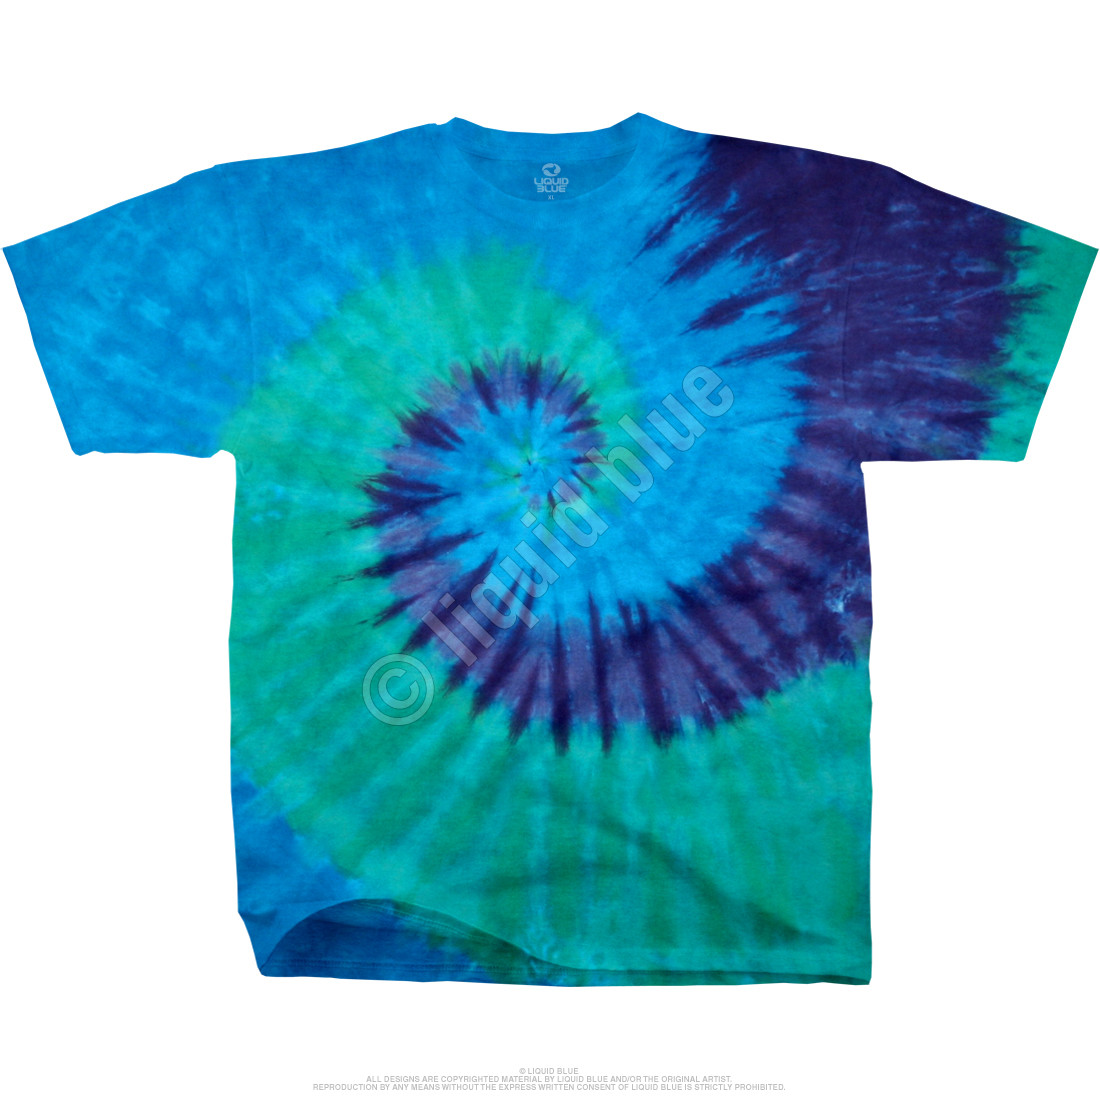 Cool Spiral Youth Unprinted Tie-Dye T-Shirt